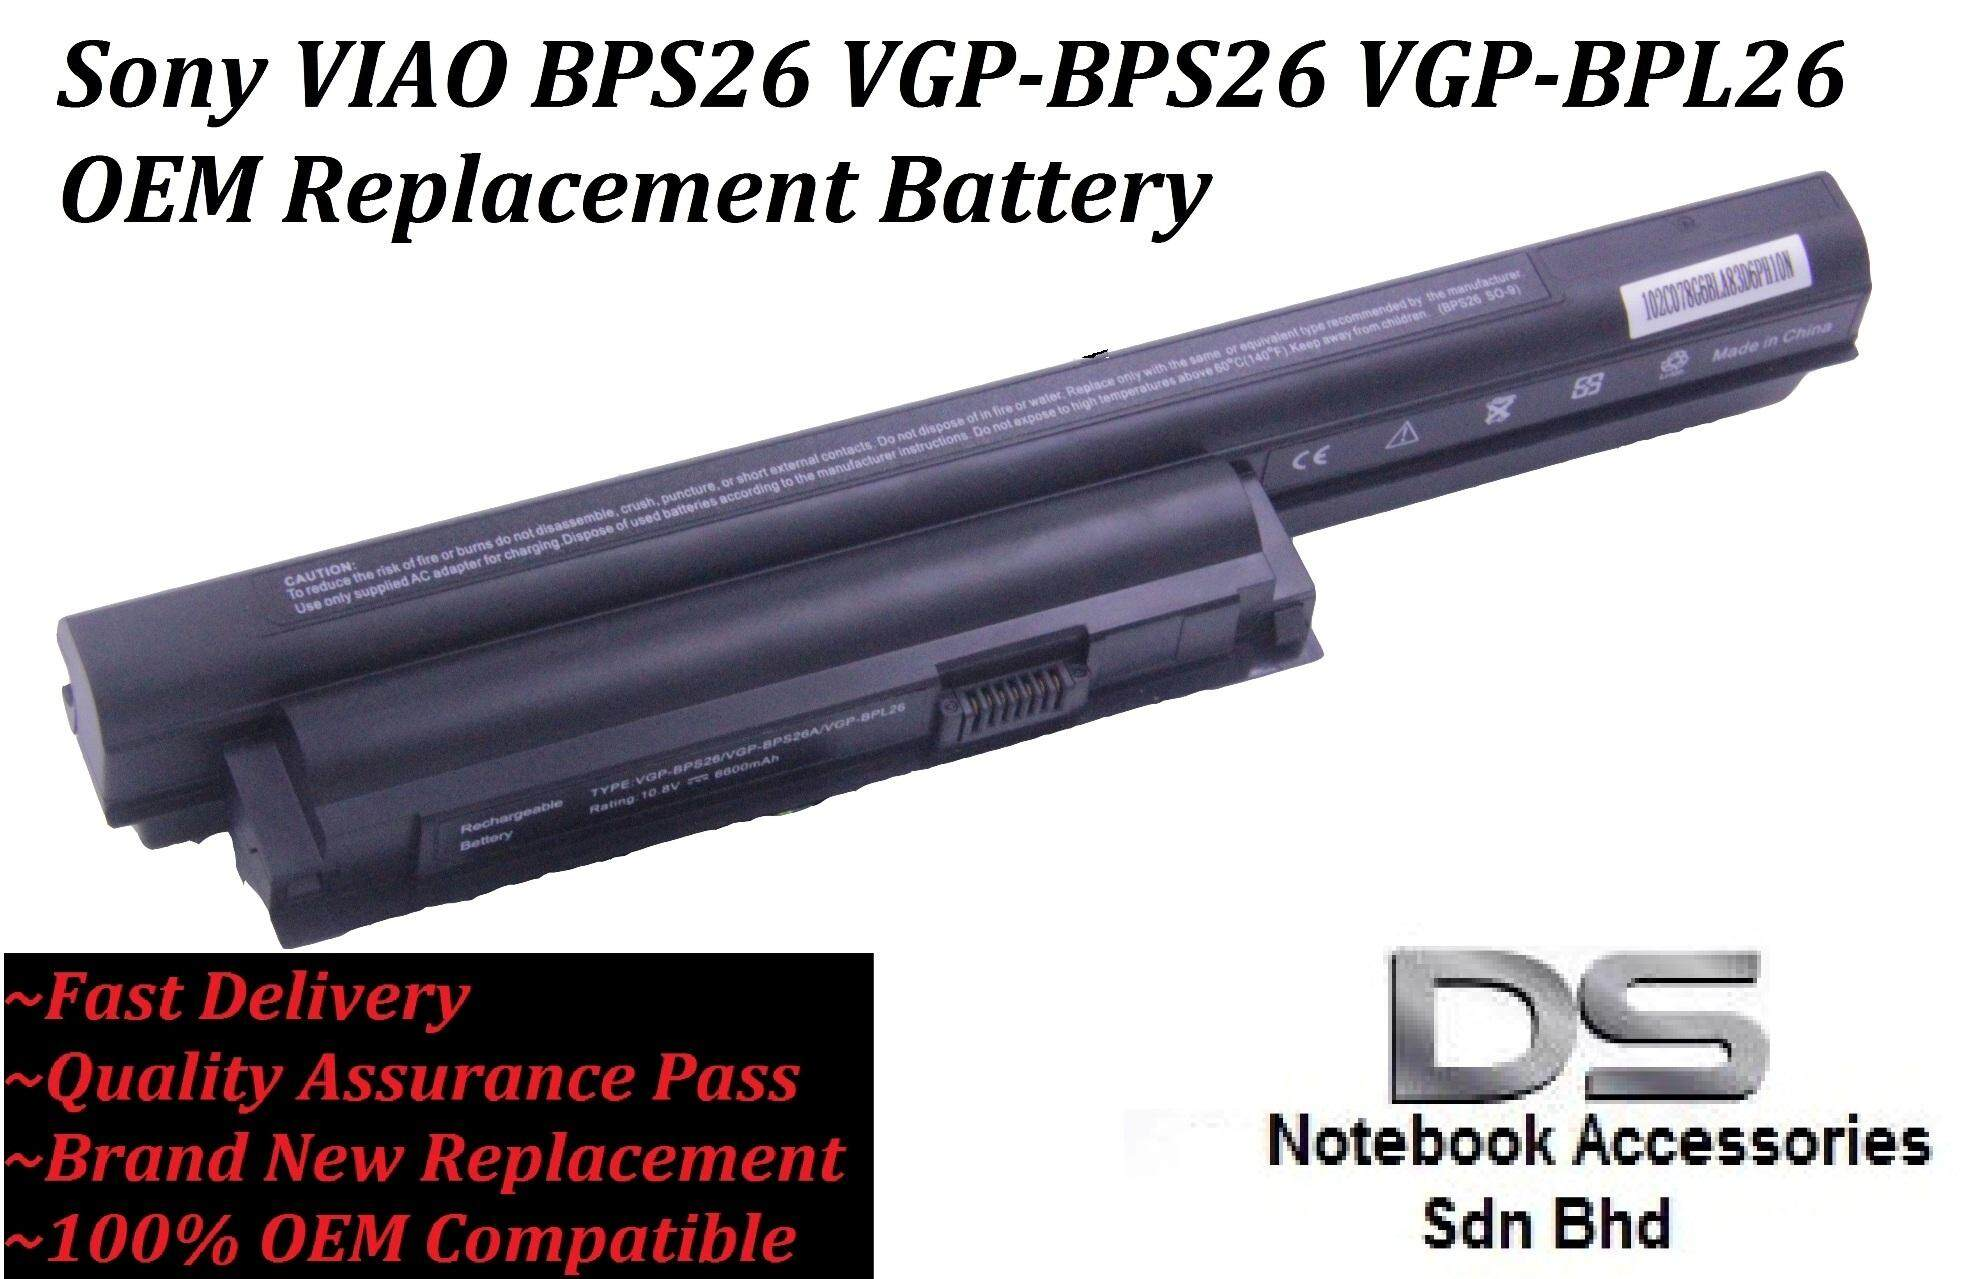 Replacement Laptop Battery for Sony Vaio VPCEG28FG/L /VGP-BPS26 Malaysia